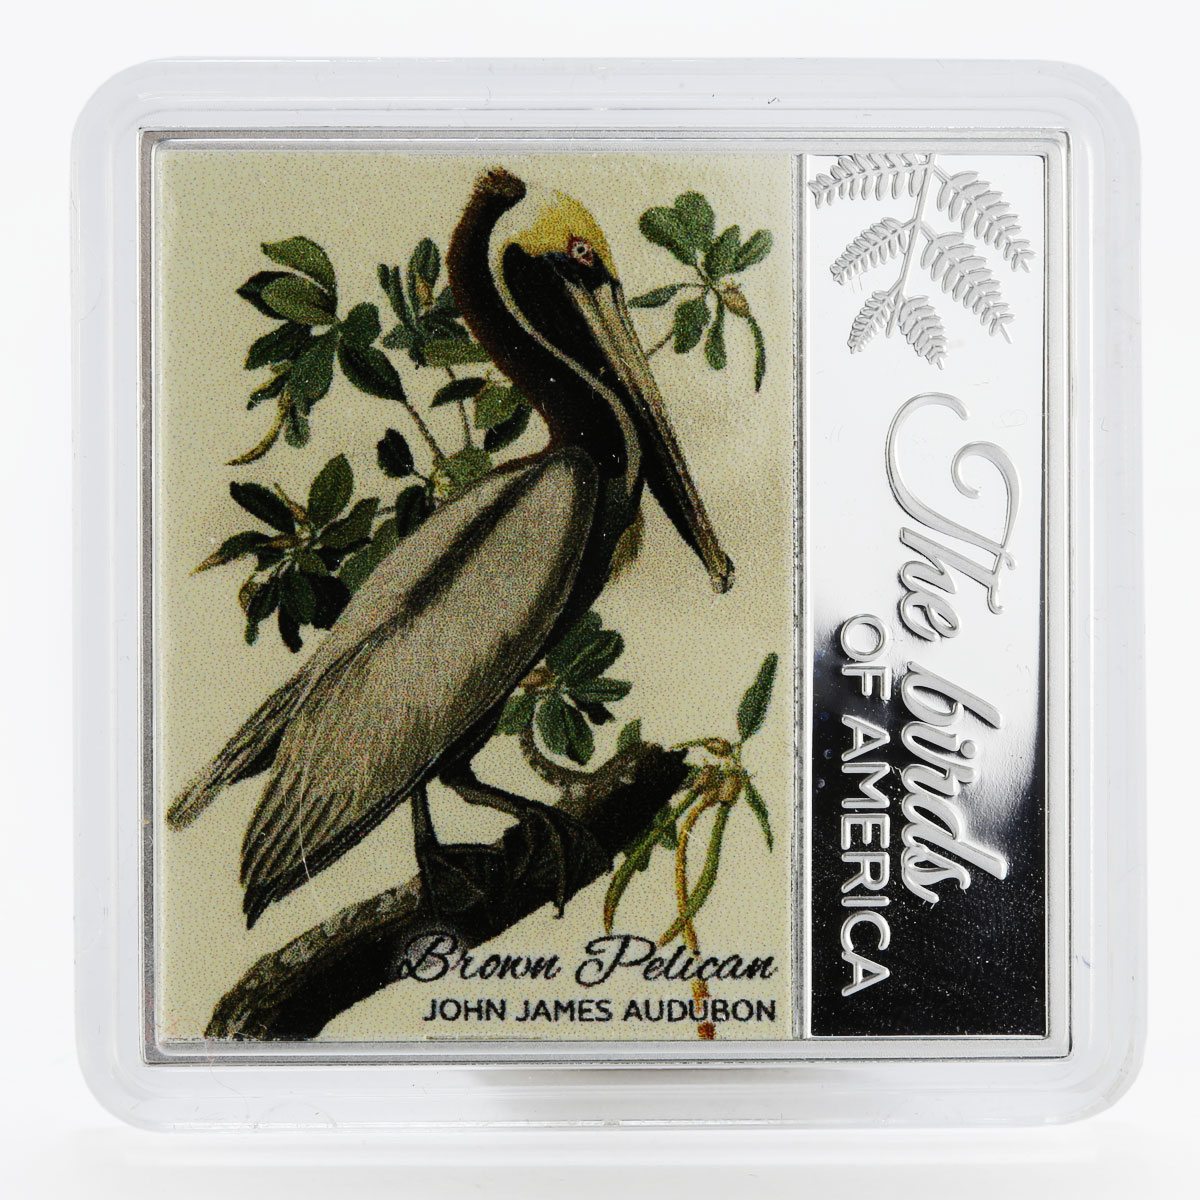 Cameroon 500 francs Birds Of America Brown Pelican color proof silver coin 2017